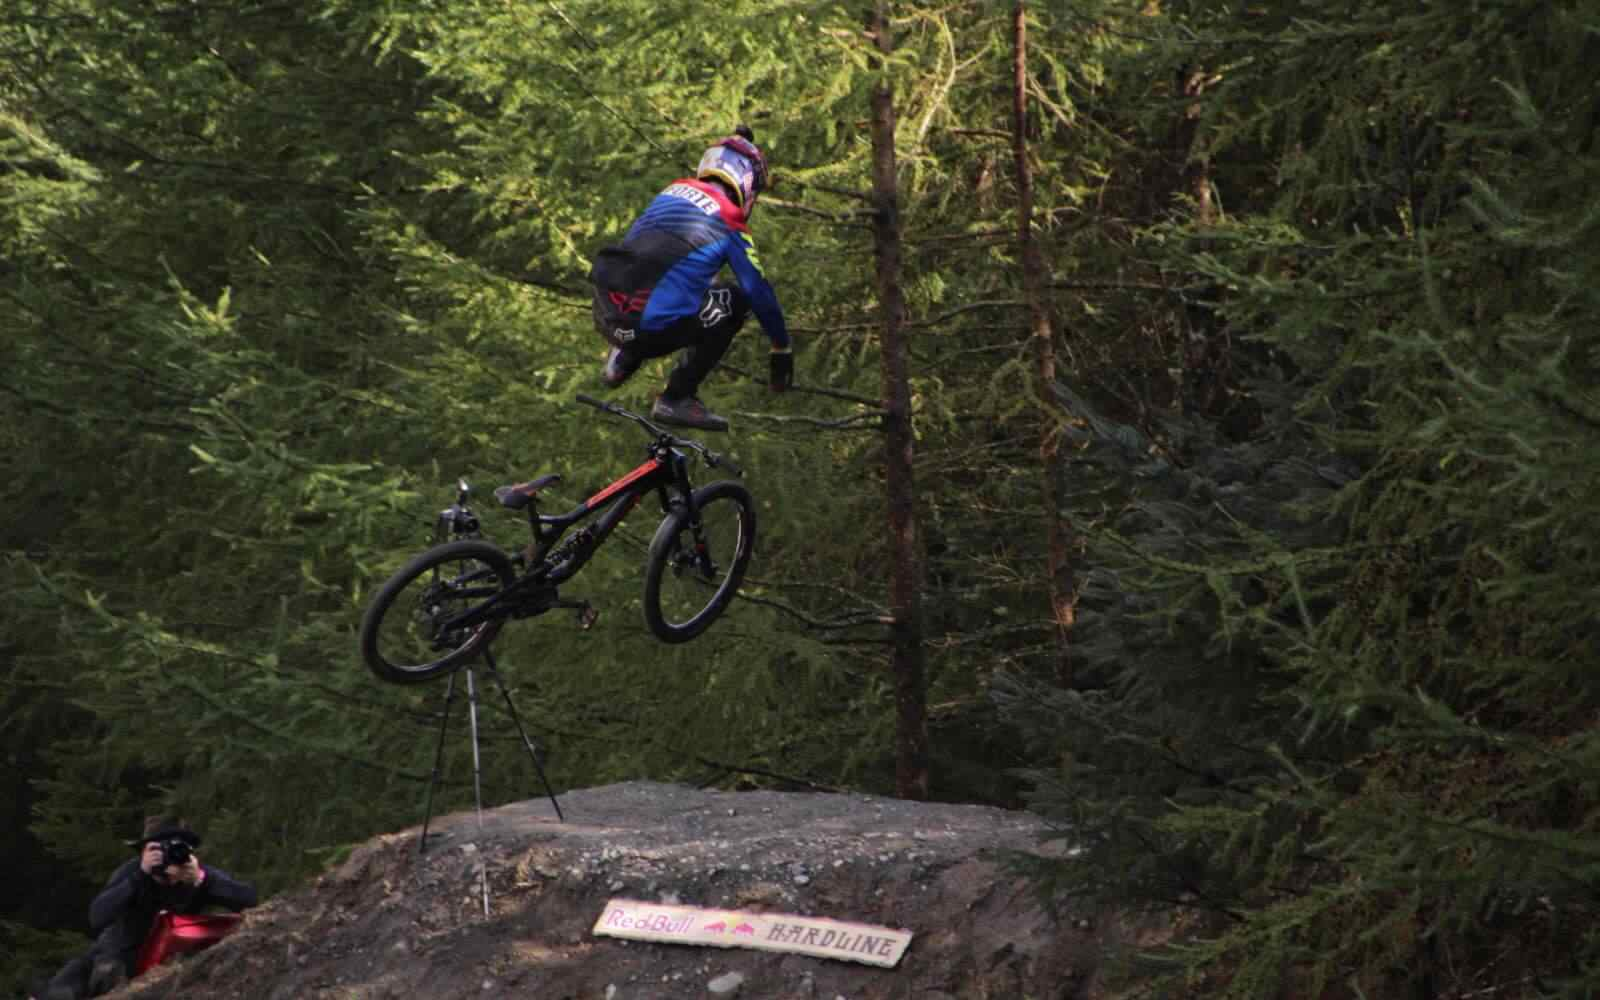 Moutain biker falling off bike mid air Red Bull Hardline